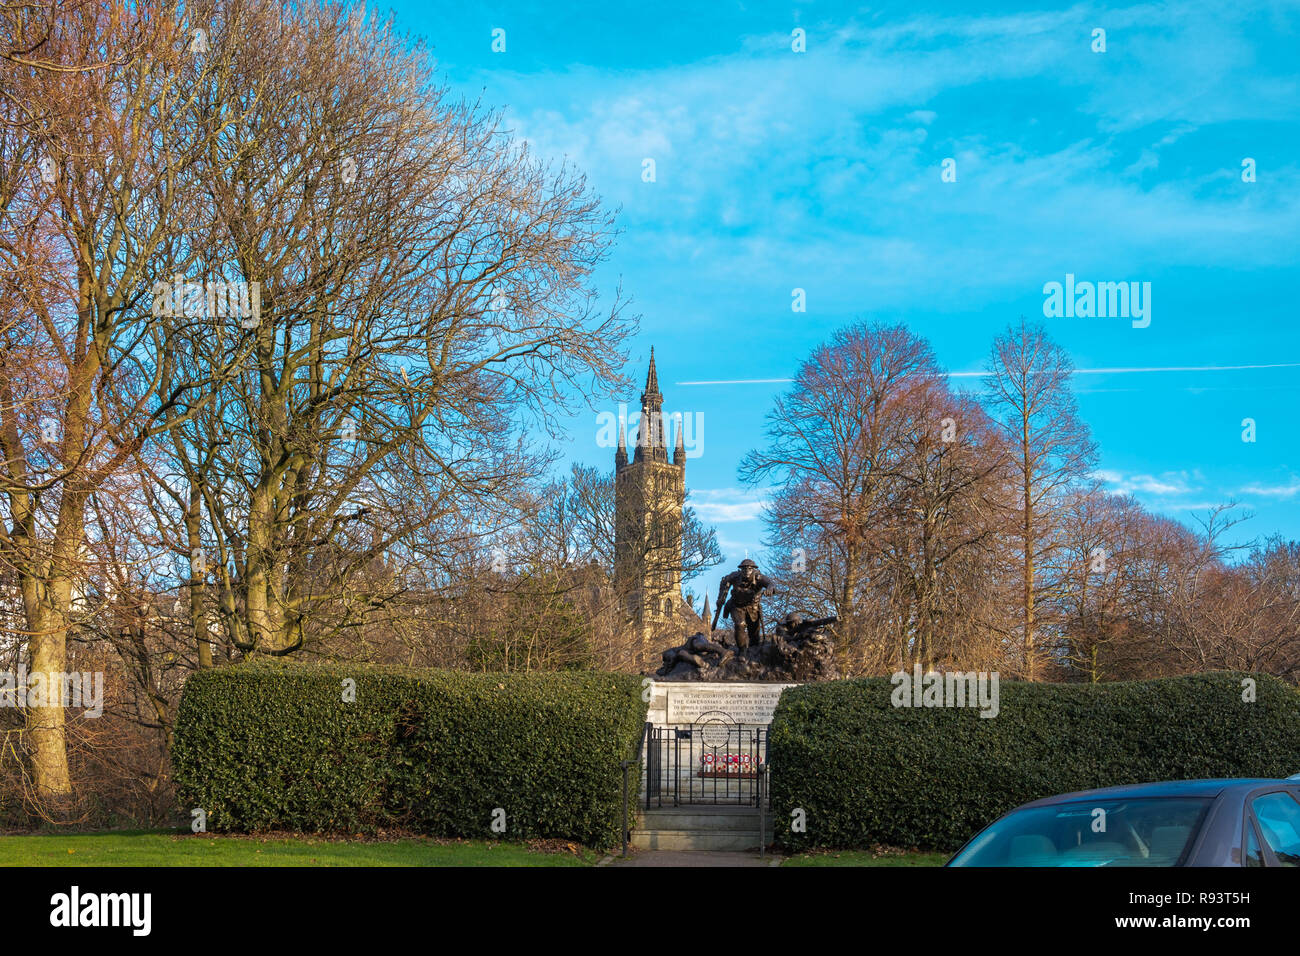 Looking over a war memorial to the University go Glasgow with its piers in the distance - Stock Image